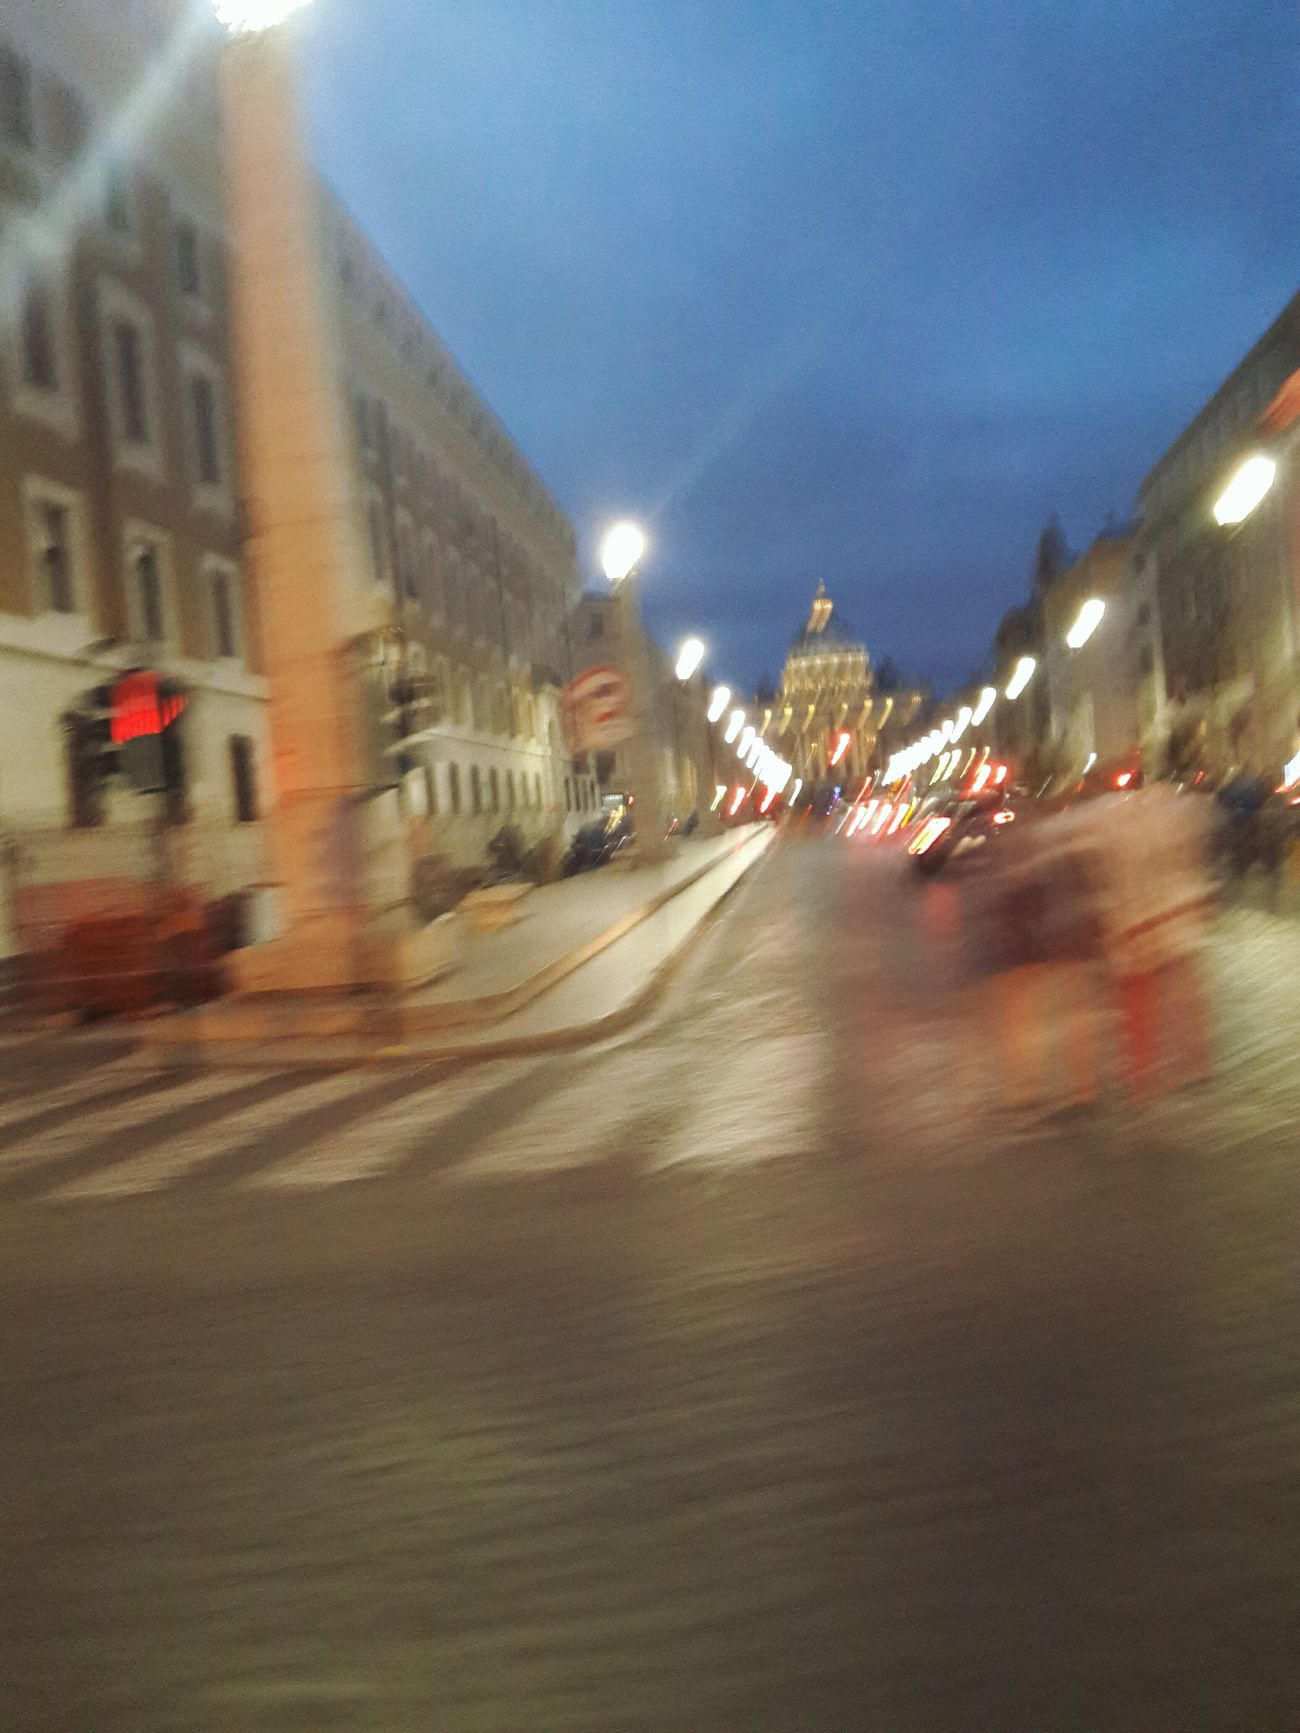 Moving Picture Architecture Urbaine Travel Destinations VaticanCity Via Della Conciliazione Turistic Places San Pietro In Vaticano